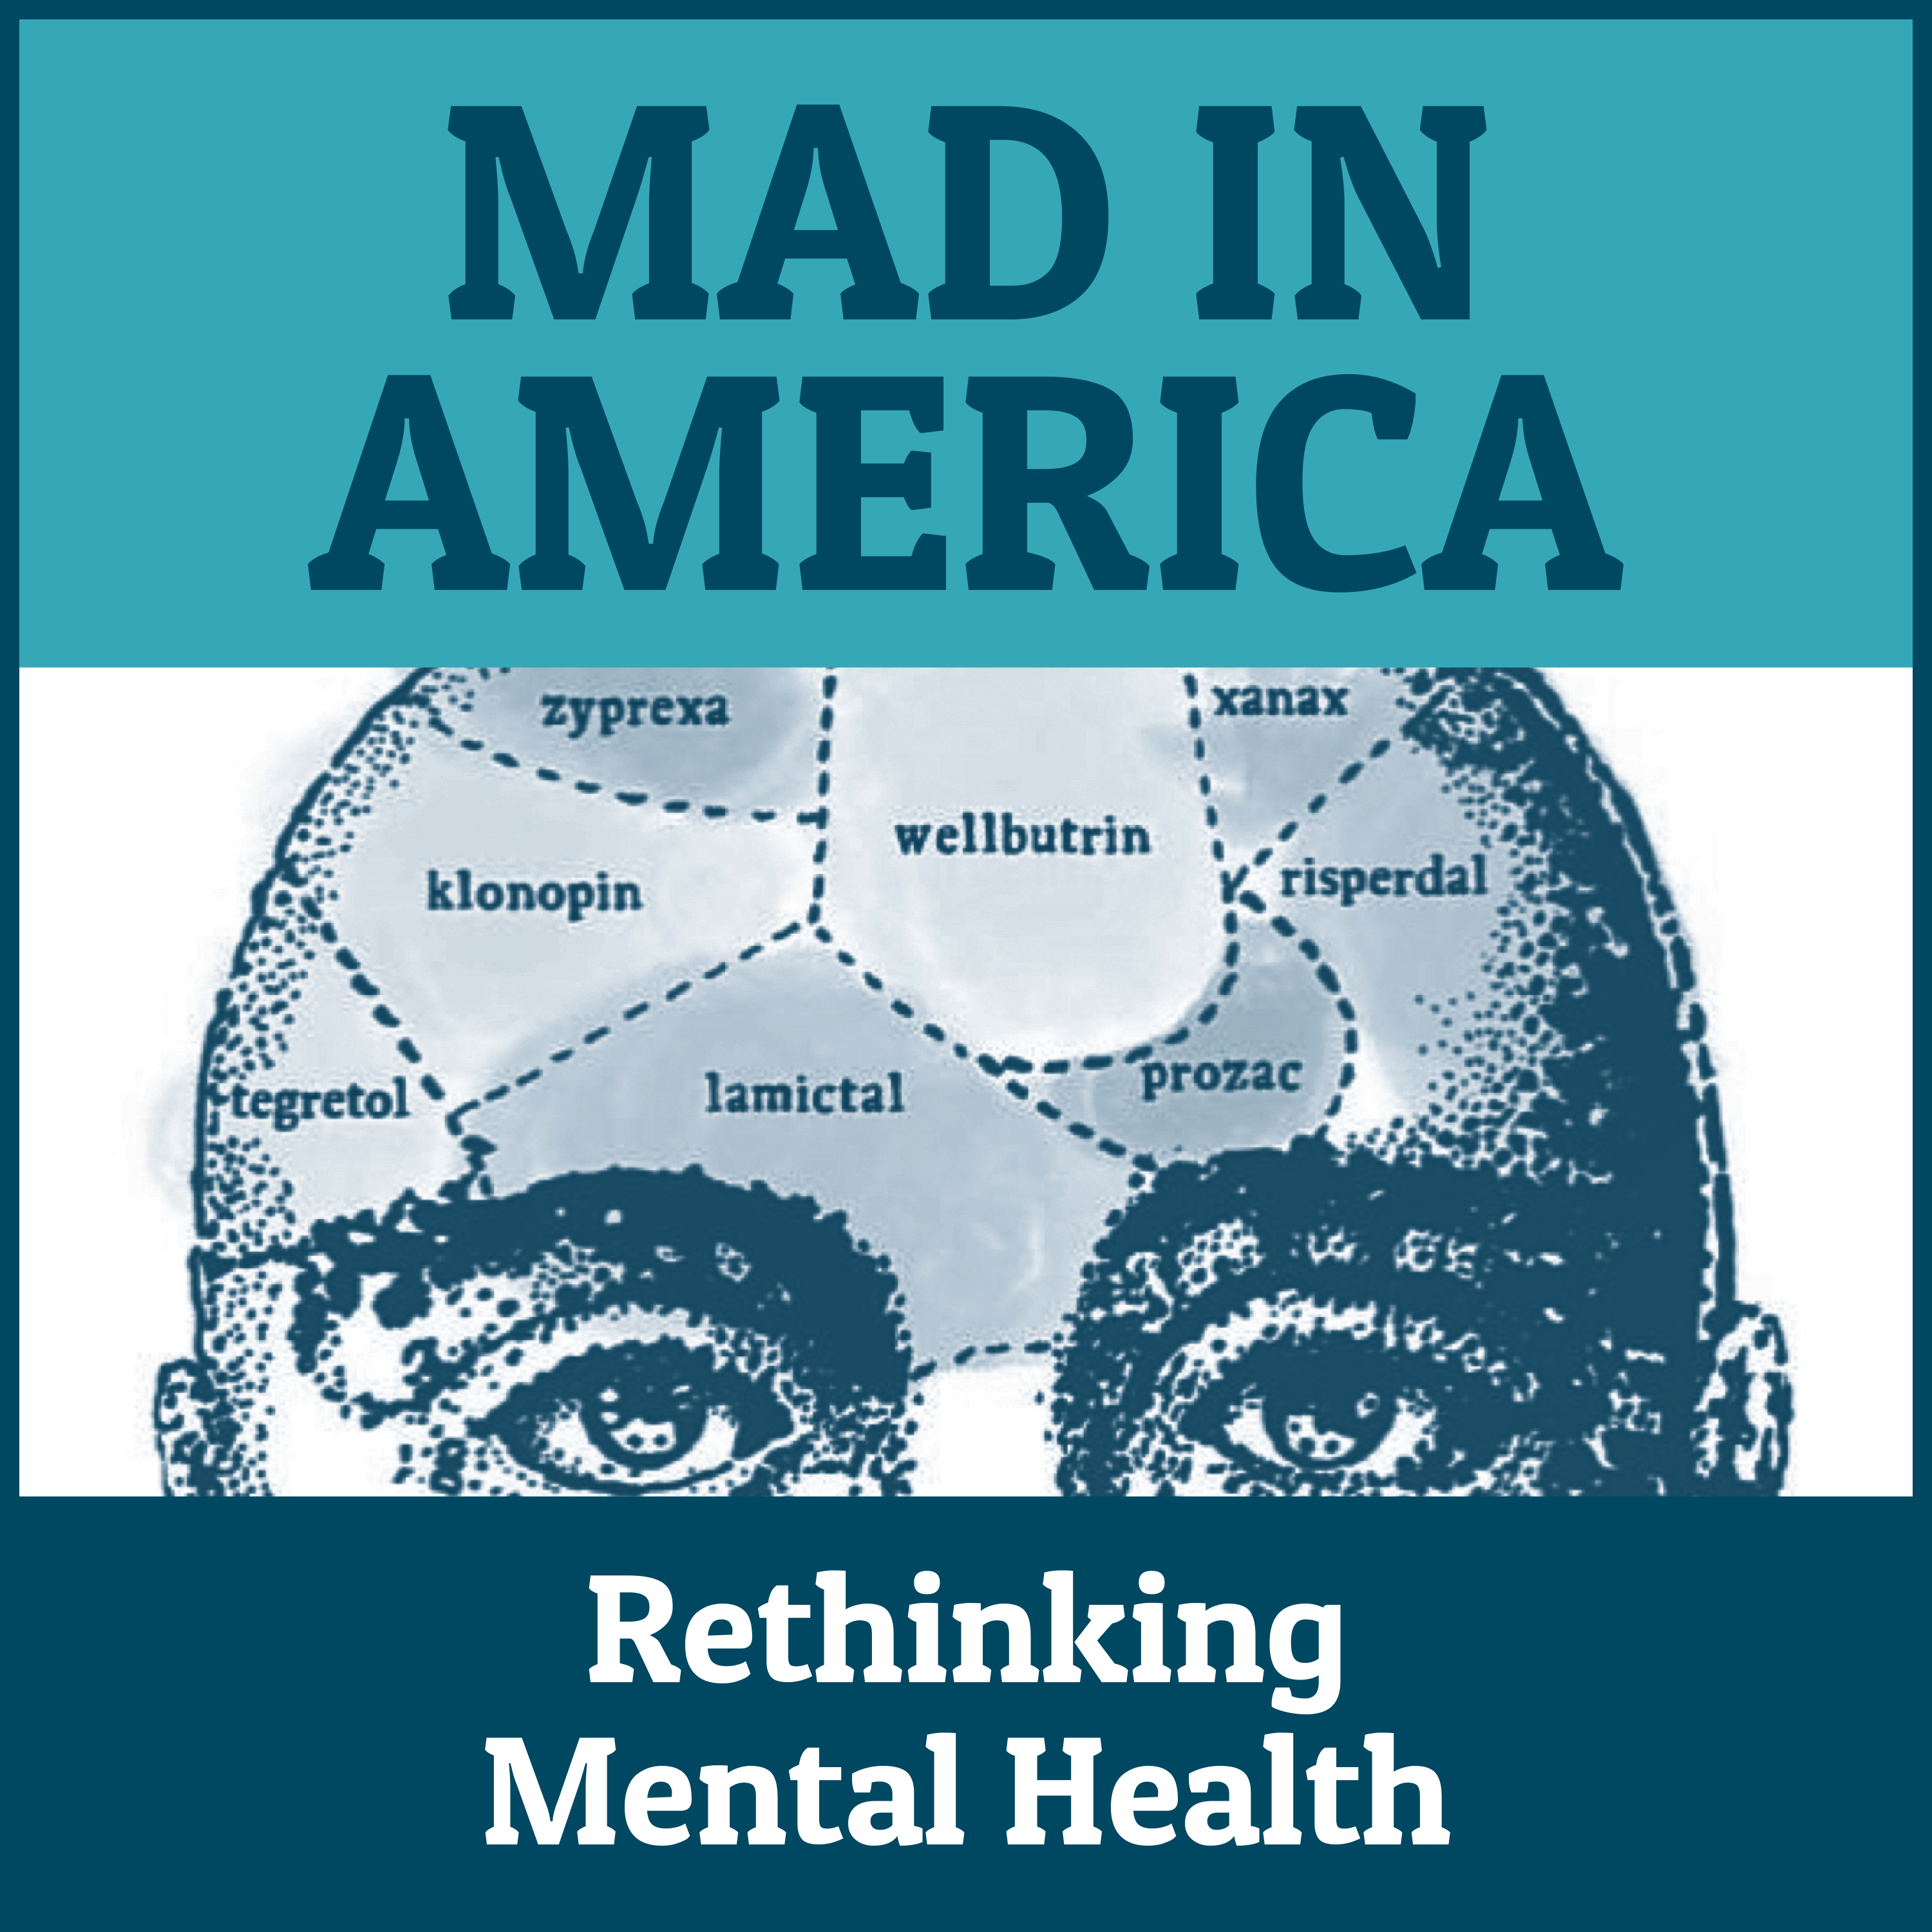 Mad in America: Rethinking Mental Health - Hannah Zeavin - Questioning the Moral Panic Around Teletherapy